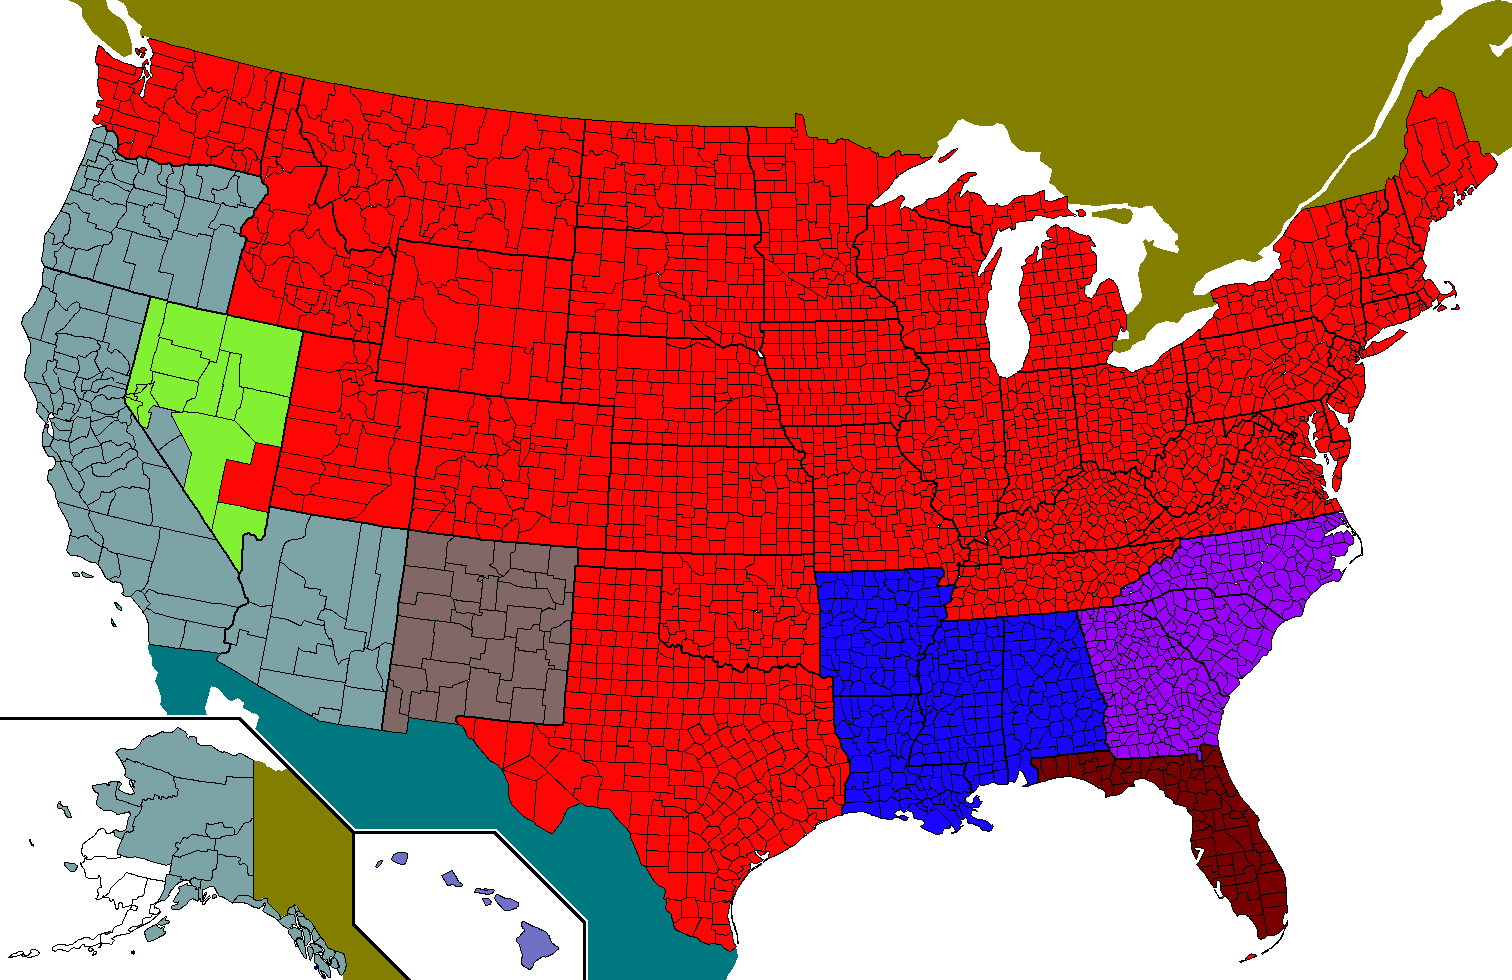 CategoryShattered Stars And Stripes Map Game Map Game Wiki - Fallout map of the us